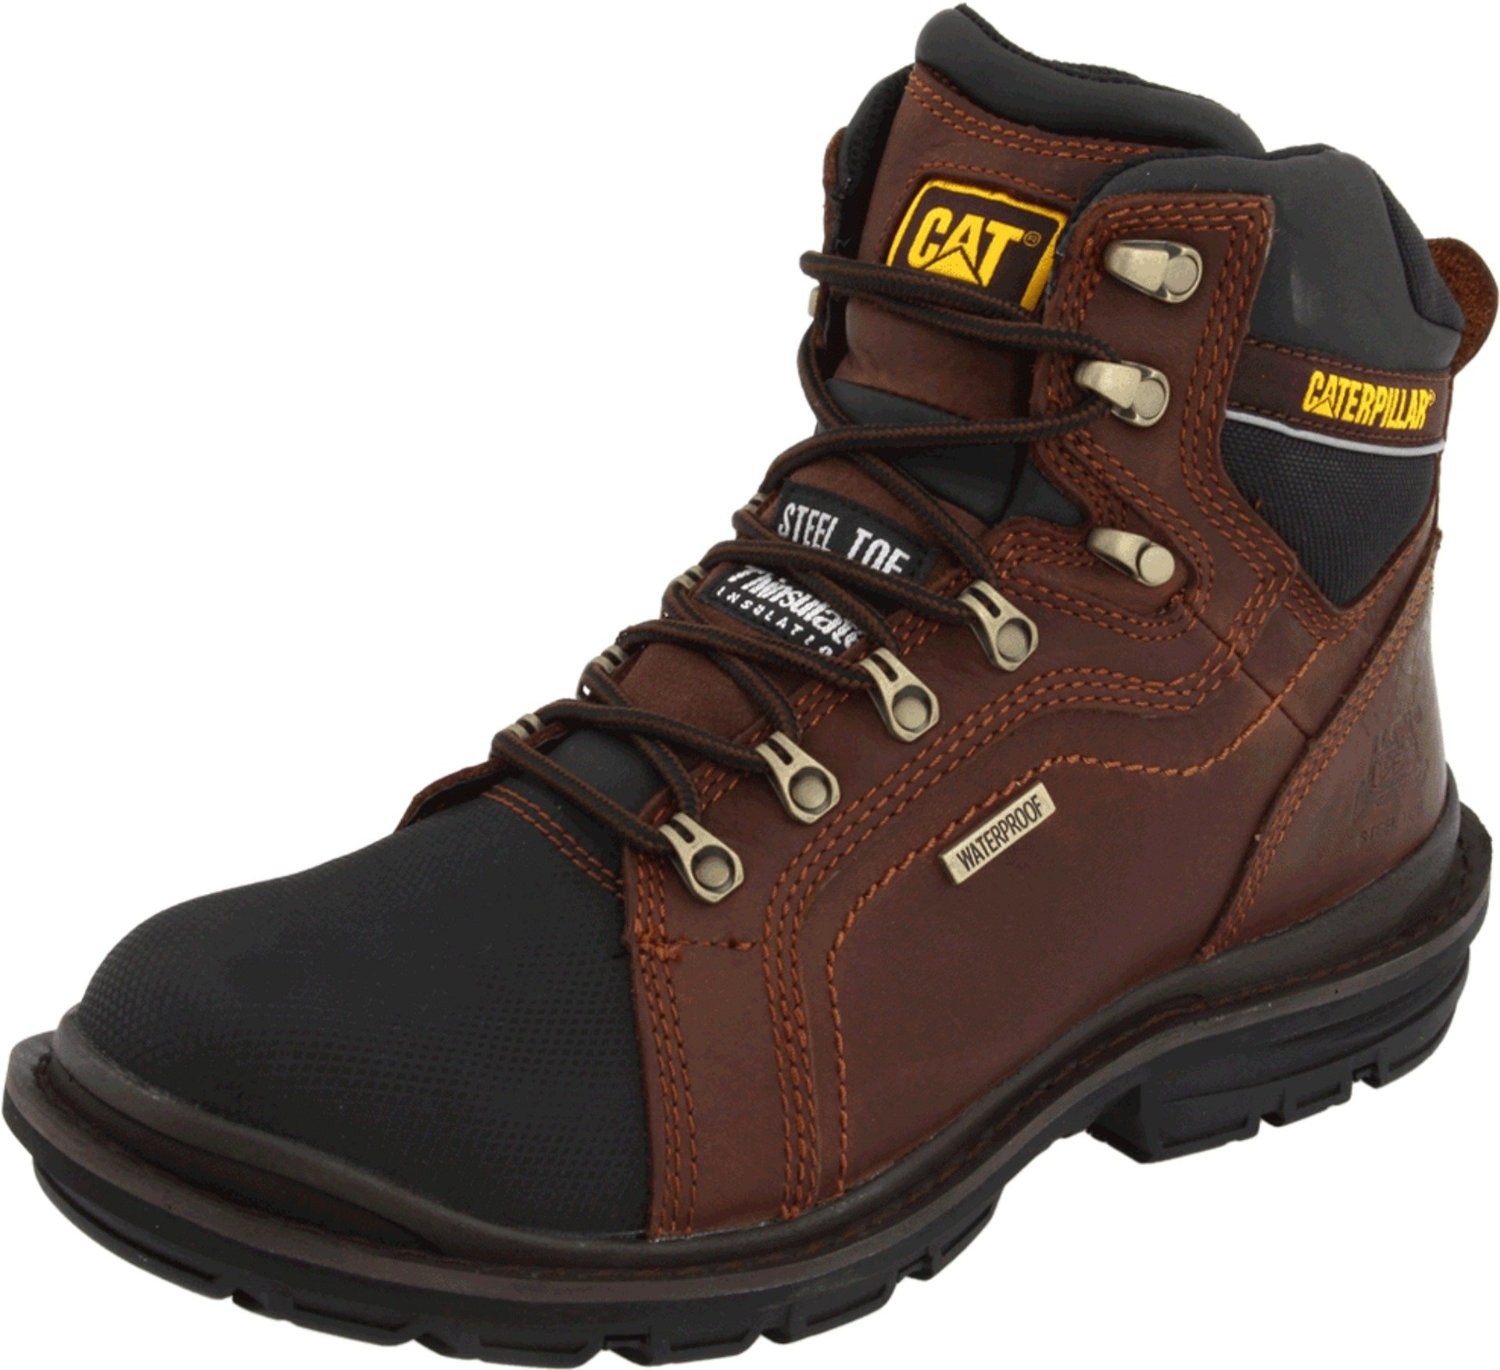 "Caterpillar Men's Caterpillar Manifold 6"" Waterproof Work Safety Boot Steel Toe Leather Medium (D,M) Oak P89981 at Sears.com"